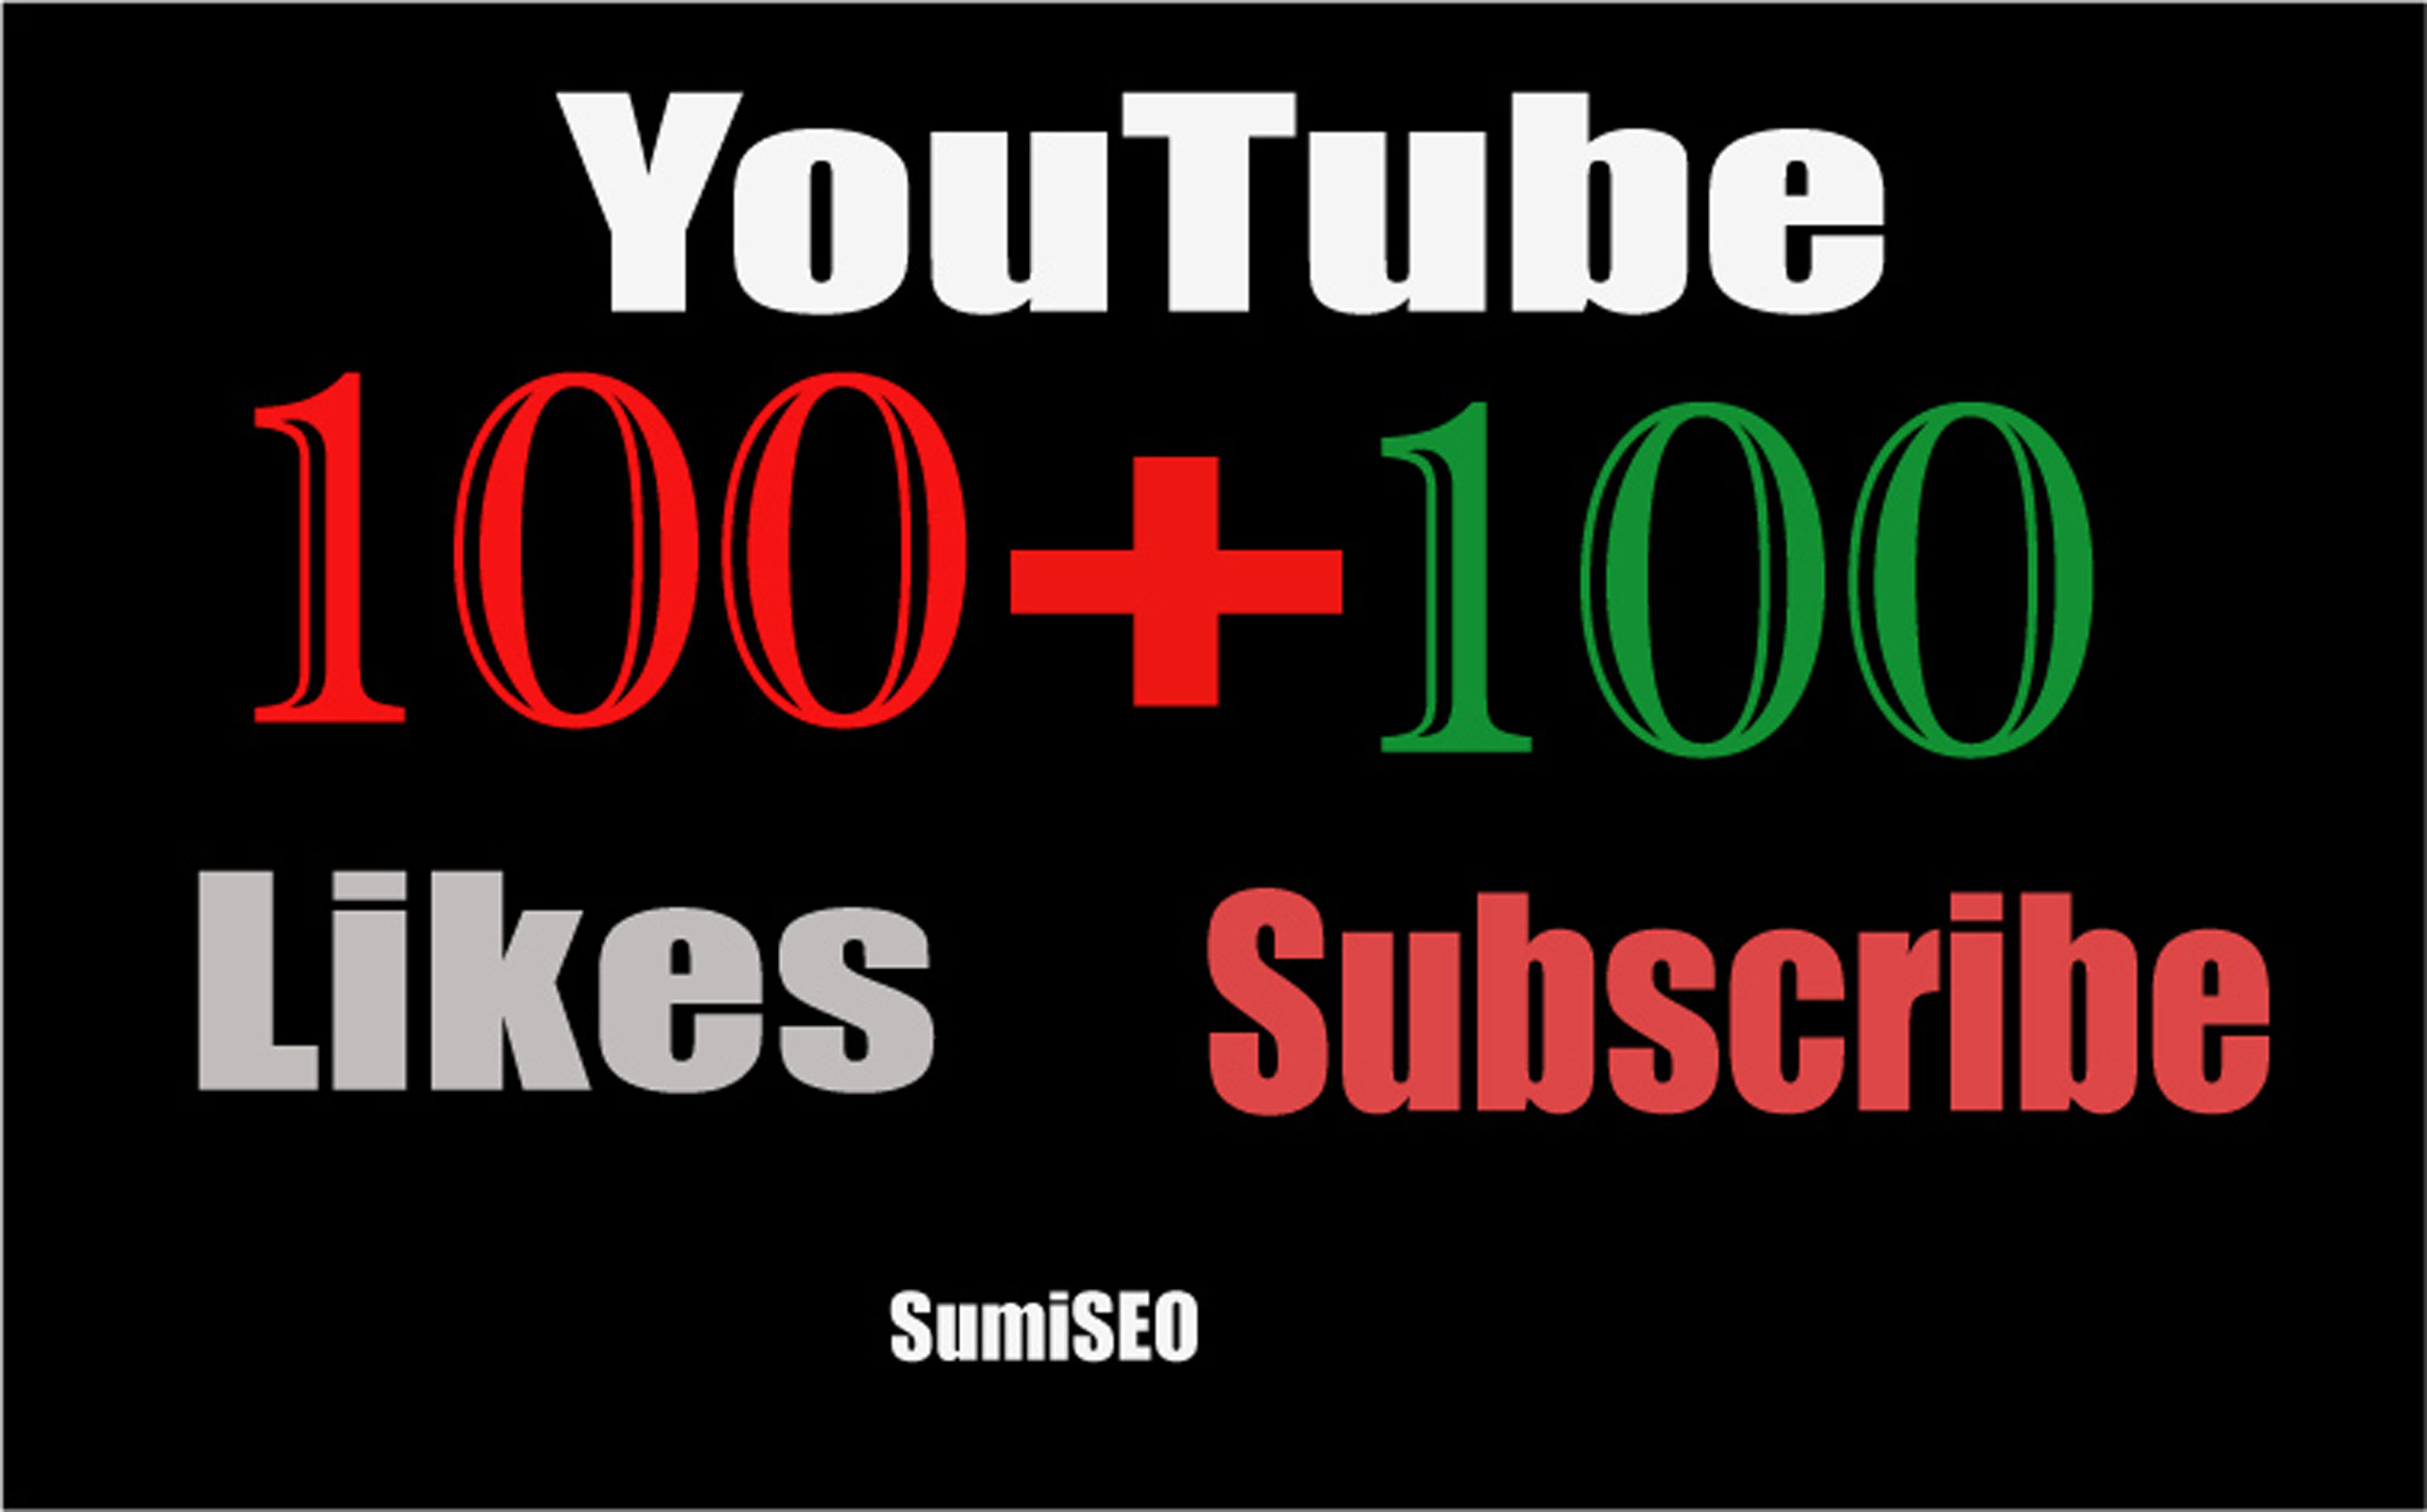 Manualy do 105 YouTube Likes +105 Subscriber